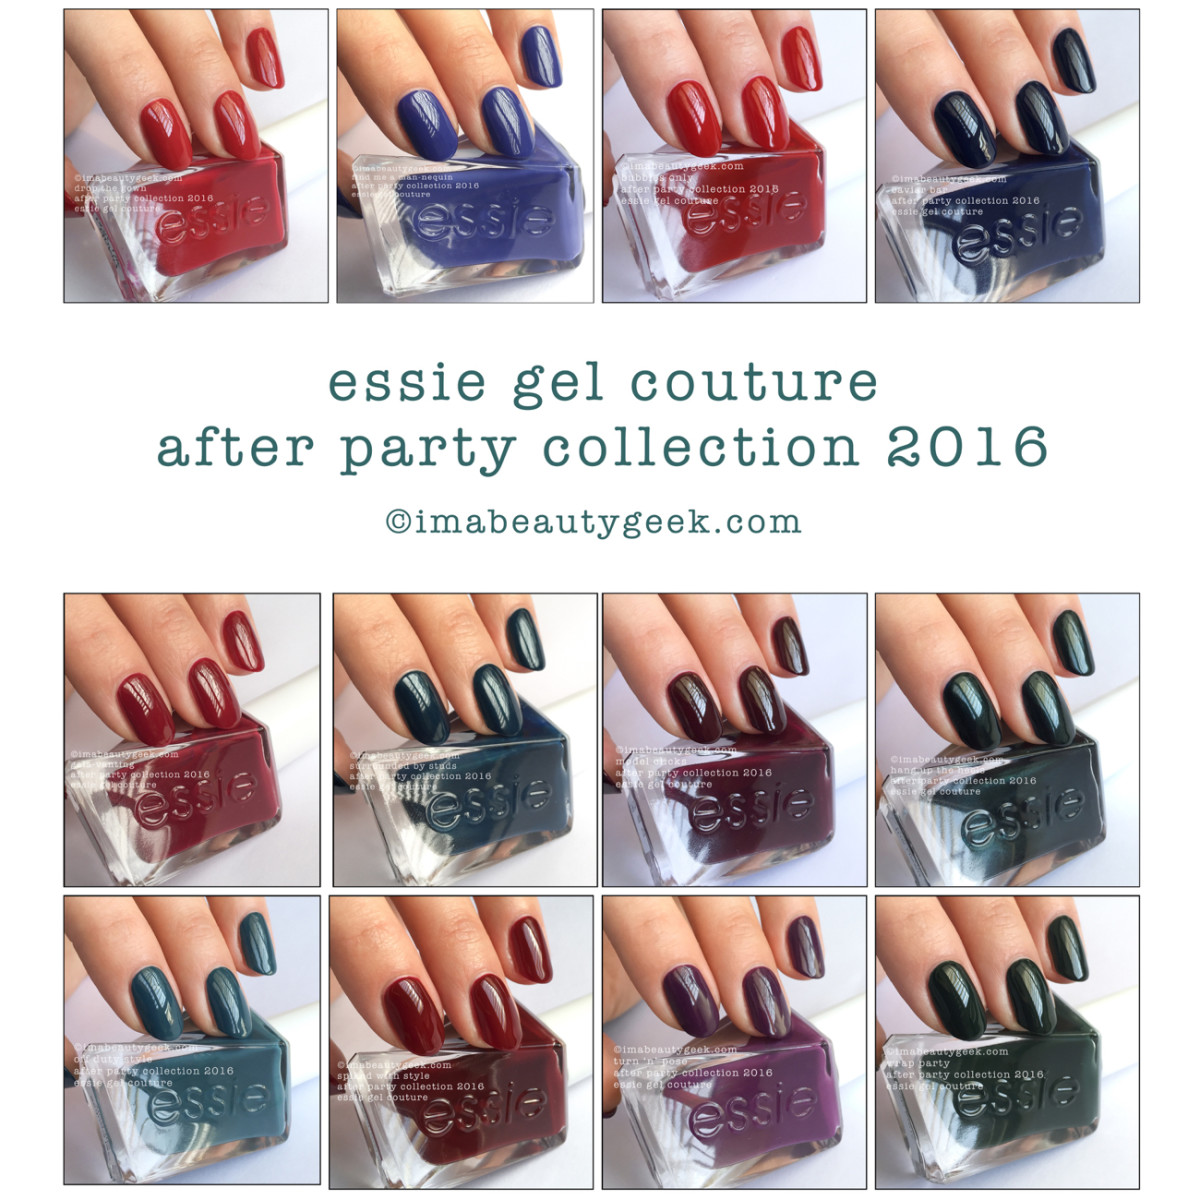 Essie Gel Couture: After Party collection